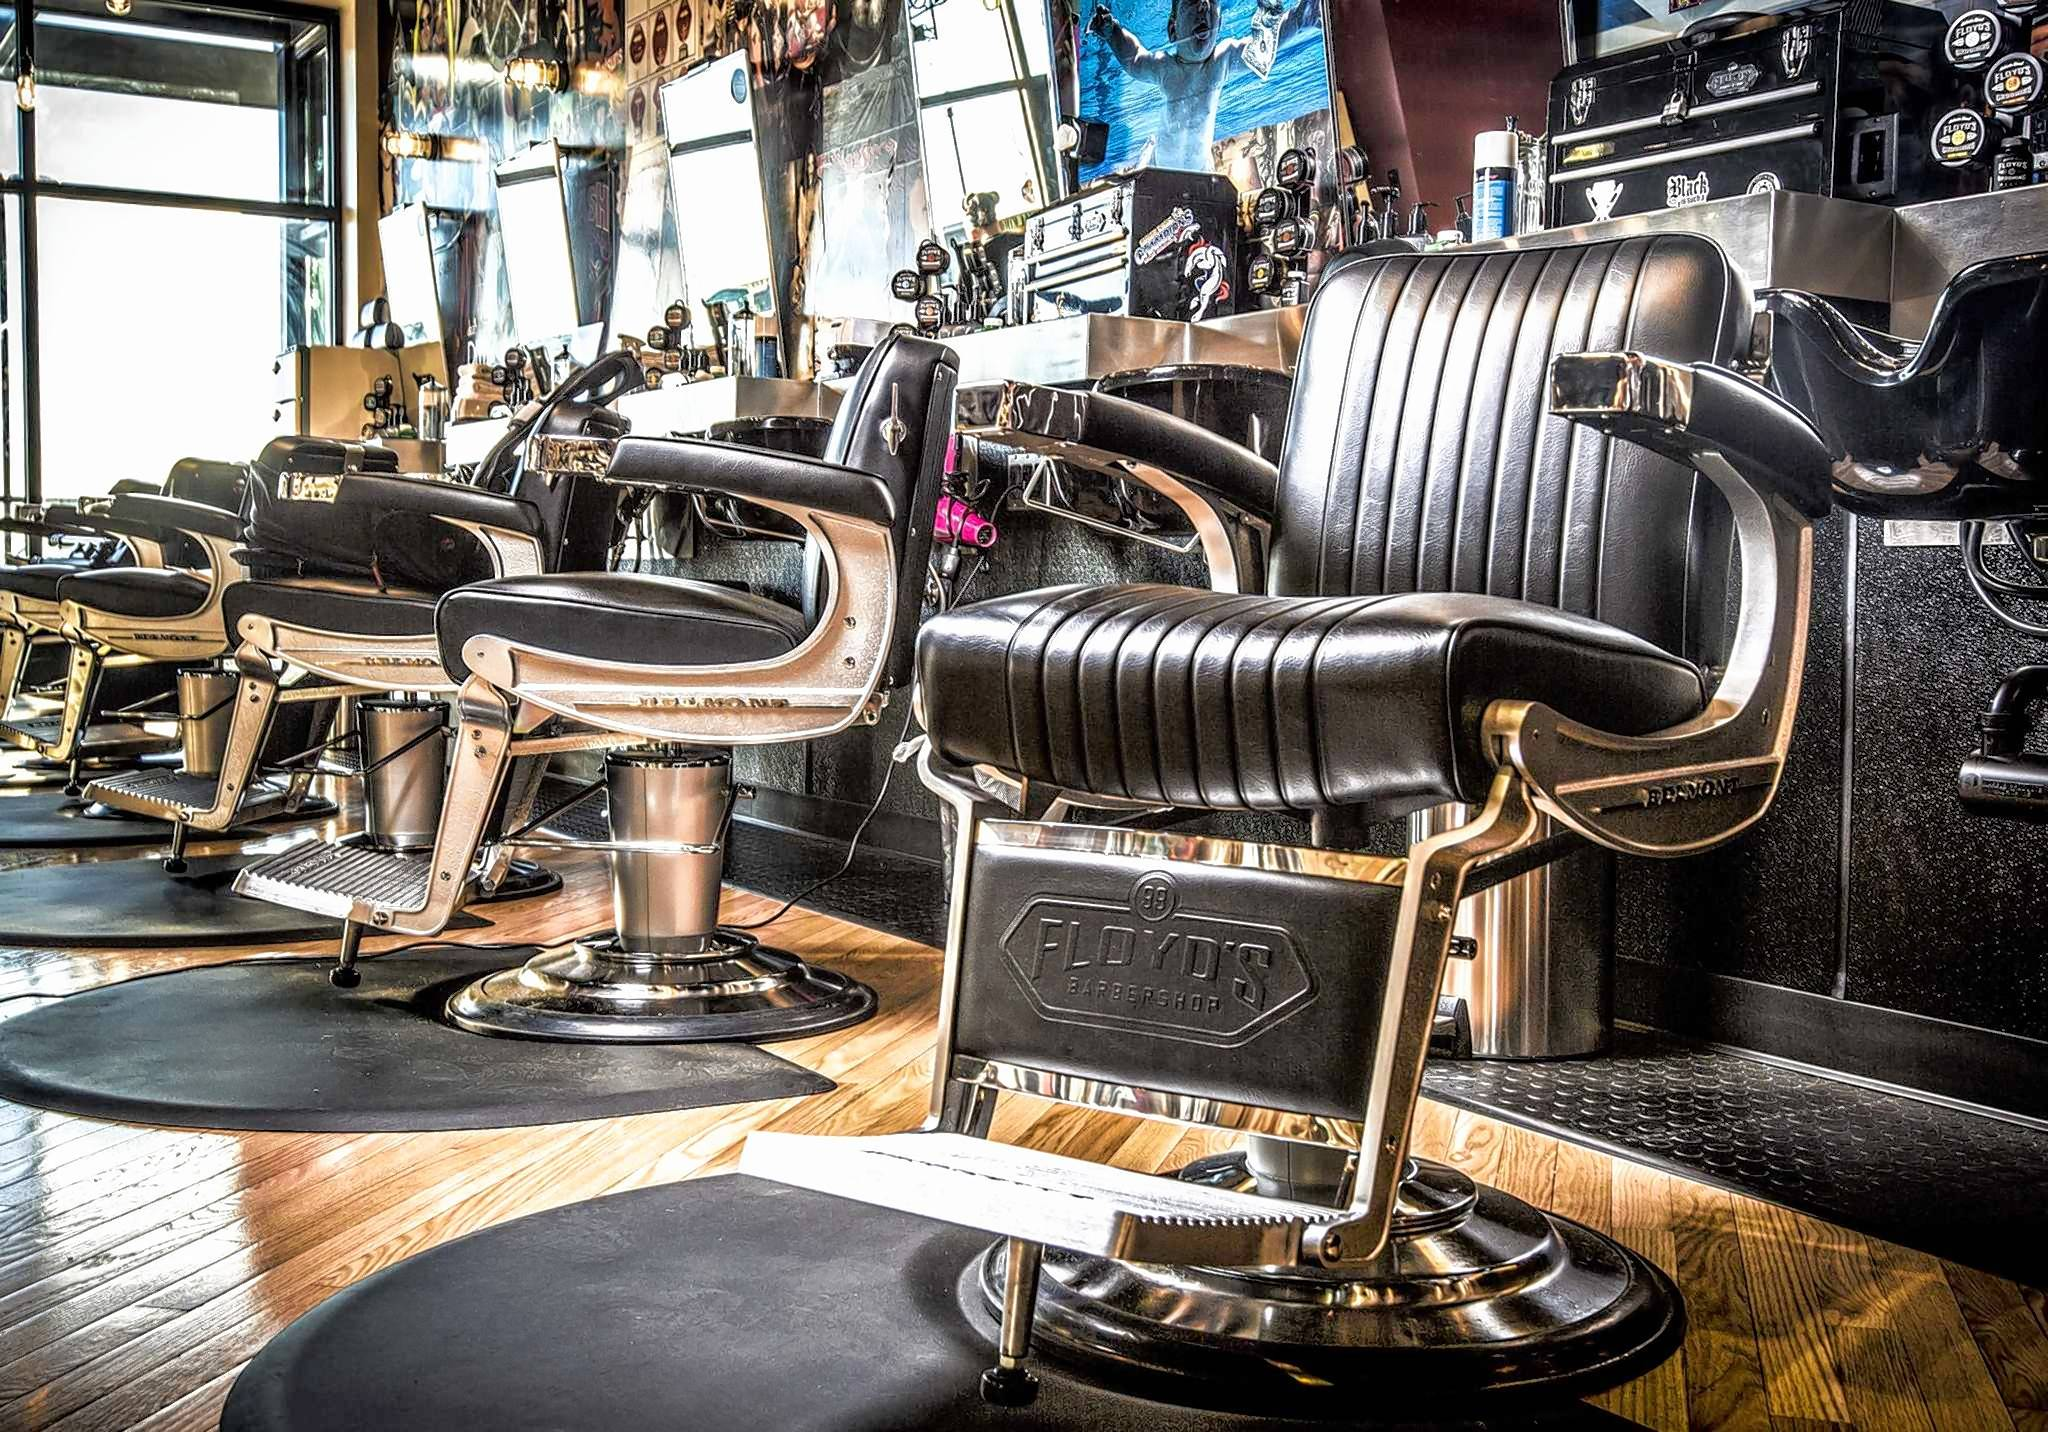 Floyd's 99 Barbershop is opening in Vernon Hills, the third suburban location for the rock 'n' roll-themed barbershop that caters to both men and women.